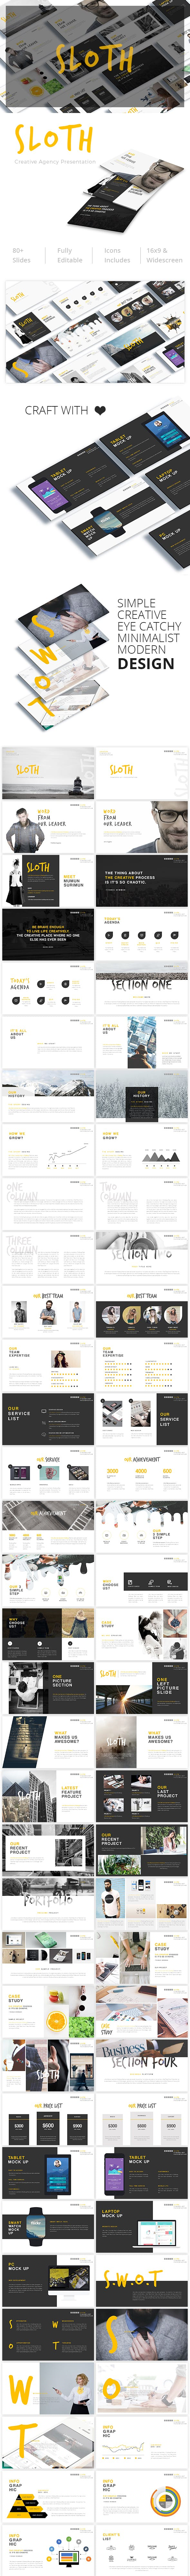 sloth creative agency powerpoint template by giantdesign graphicriver